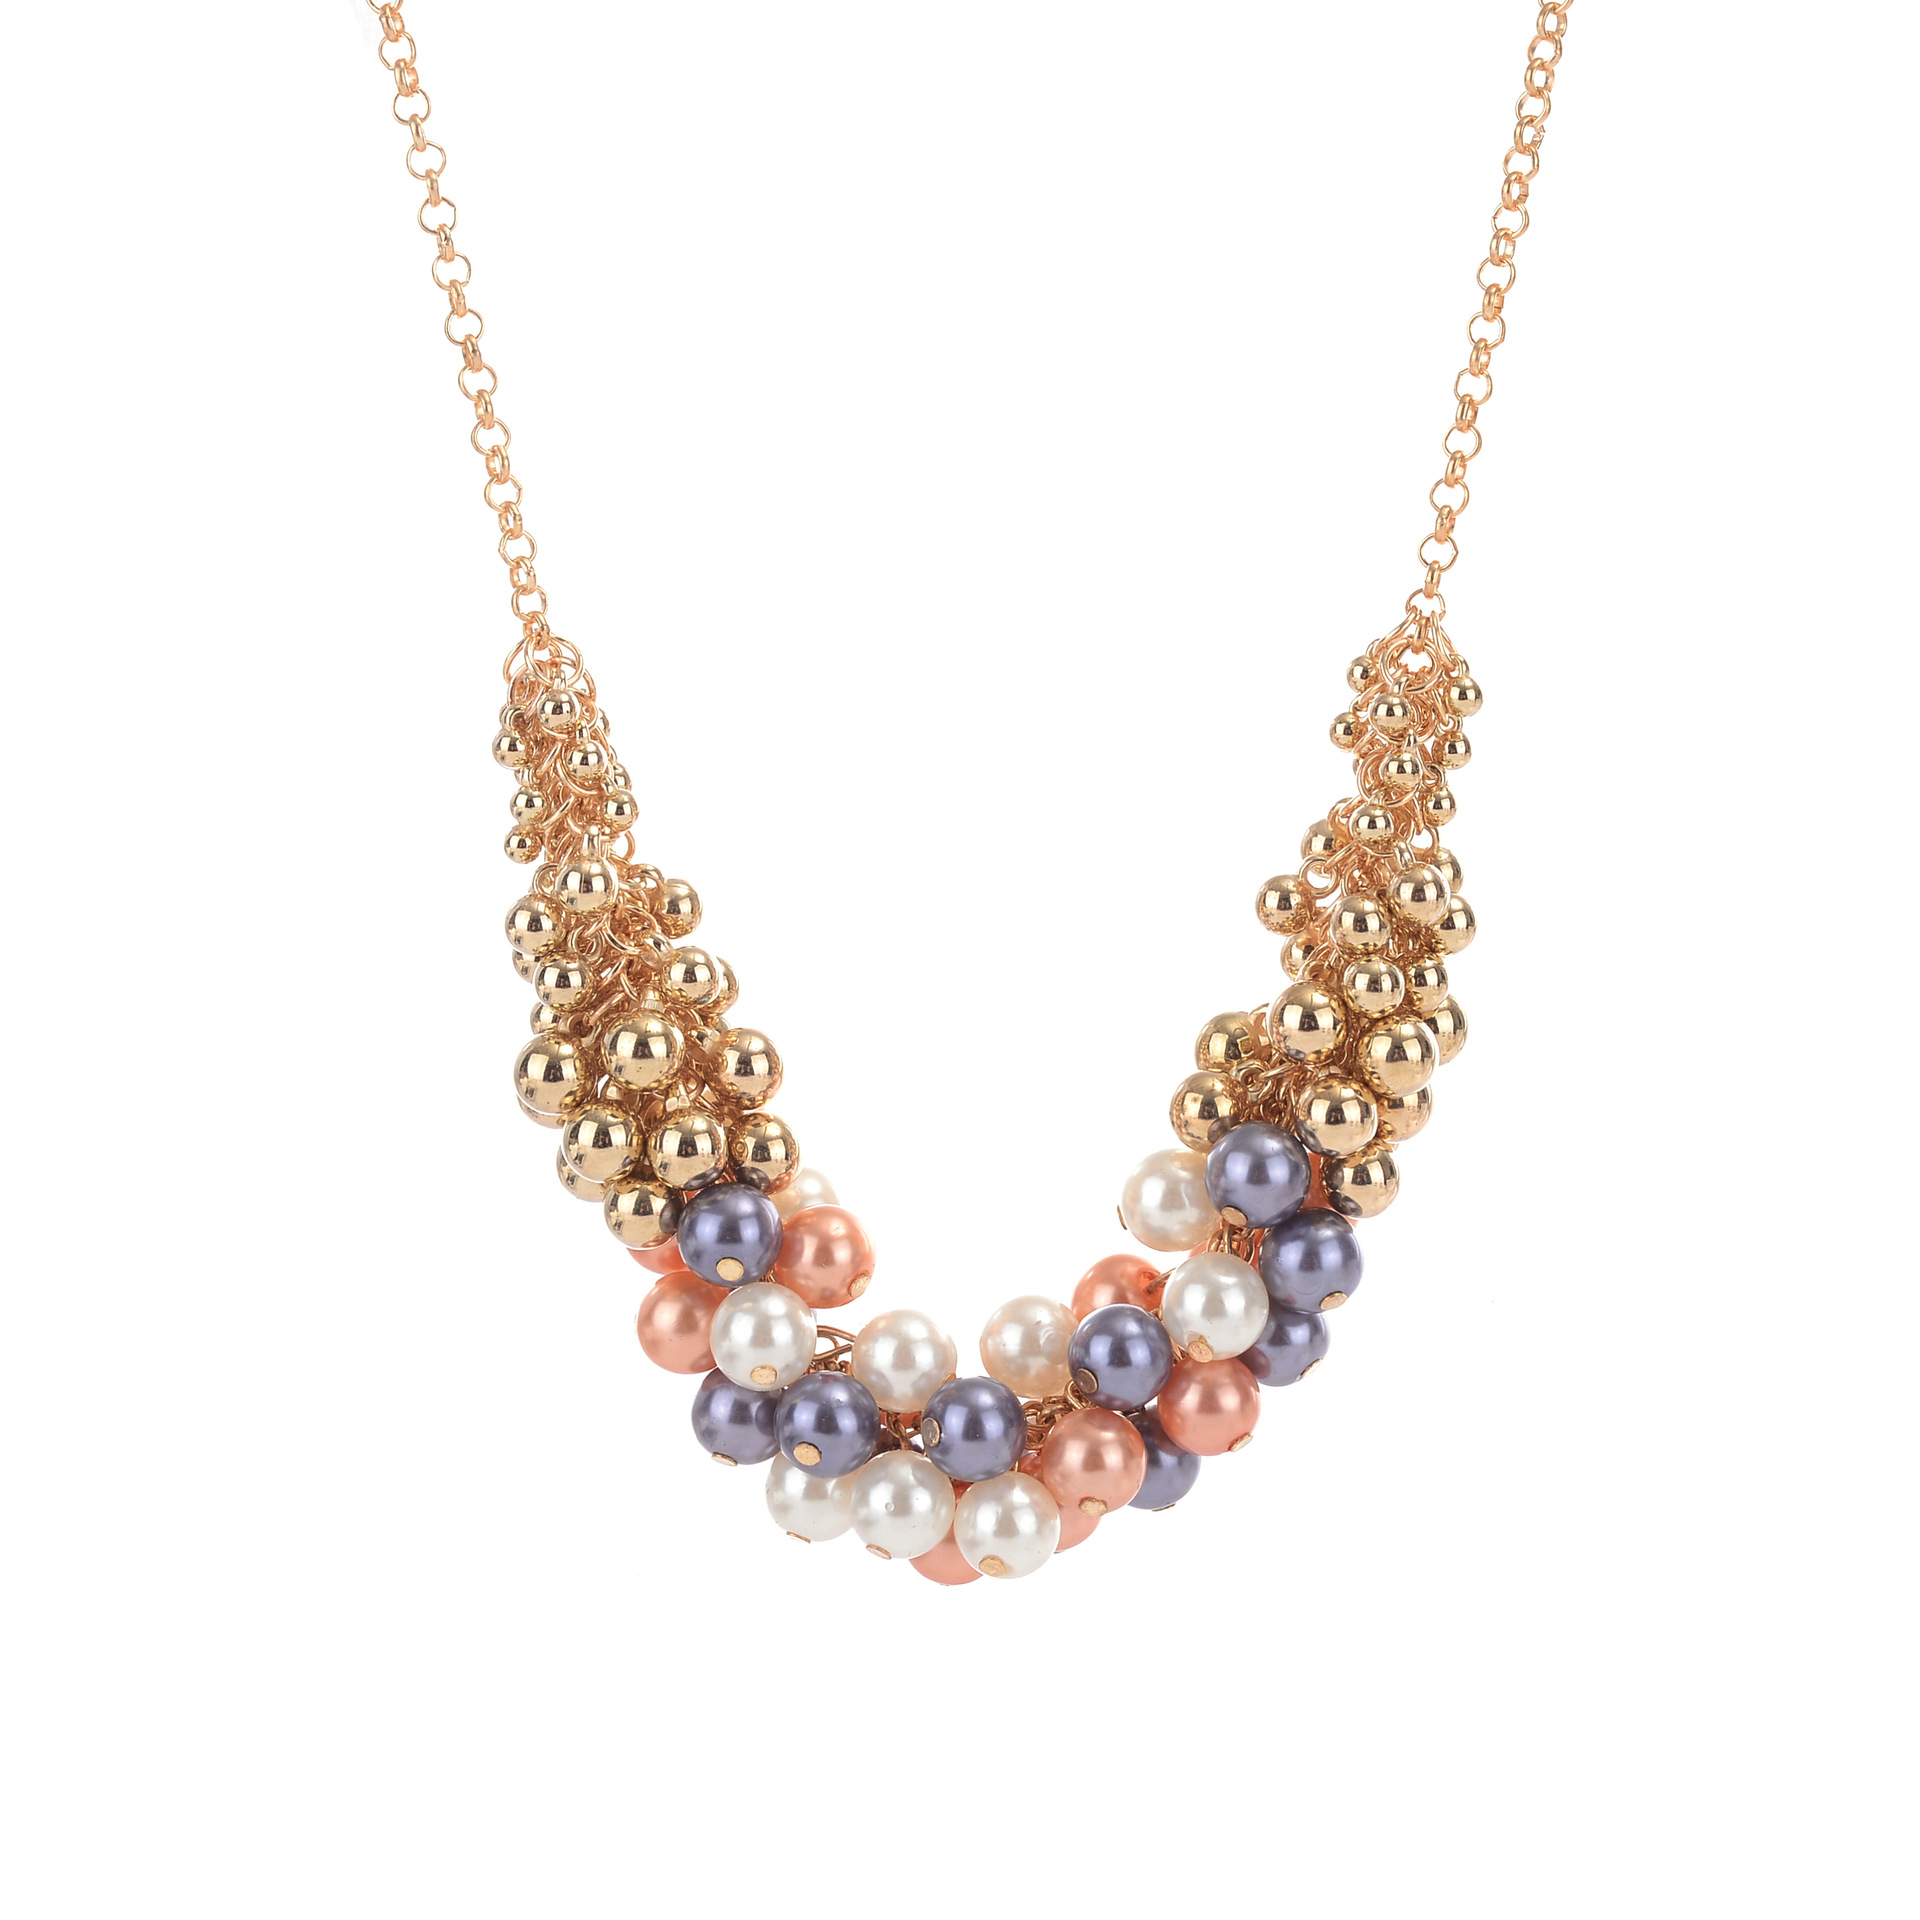 YMN-06084 new designs handmade beads with pearl  necklace Yiwu Jewelry Factory Fashion Accessories Manufacture Fashion Jewelry Supplier.